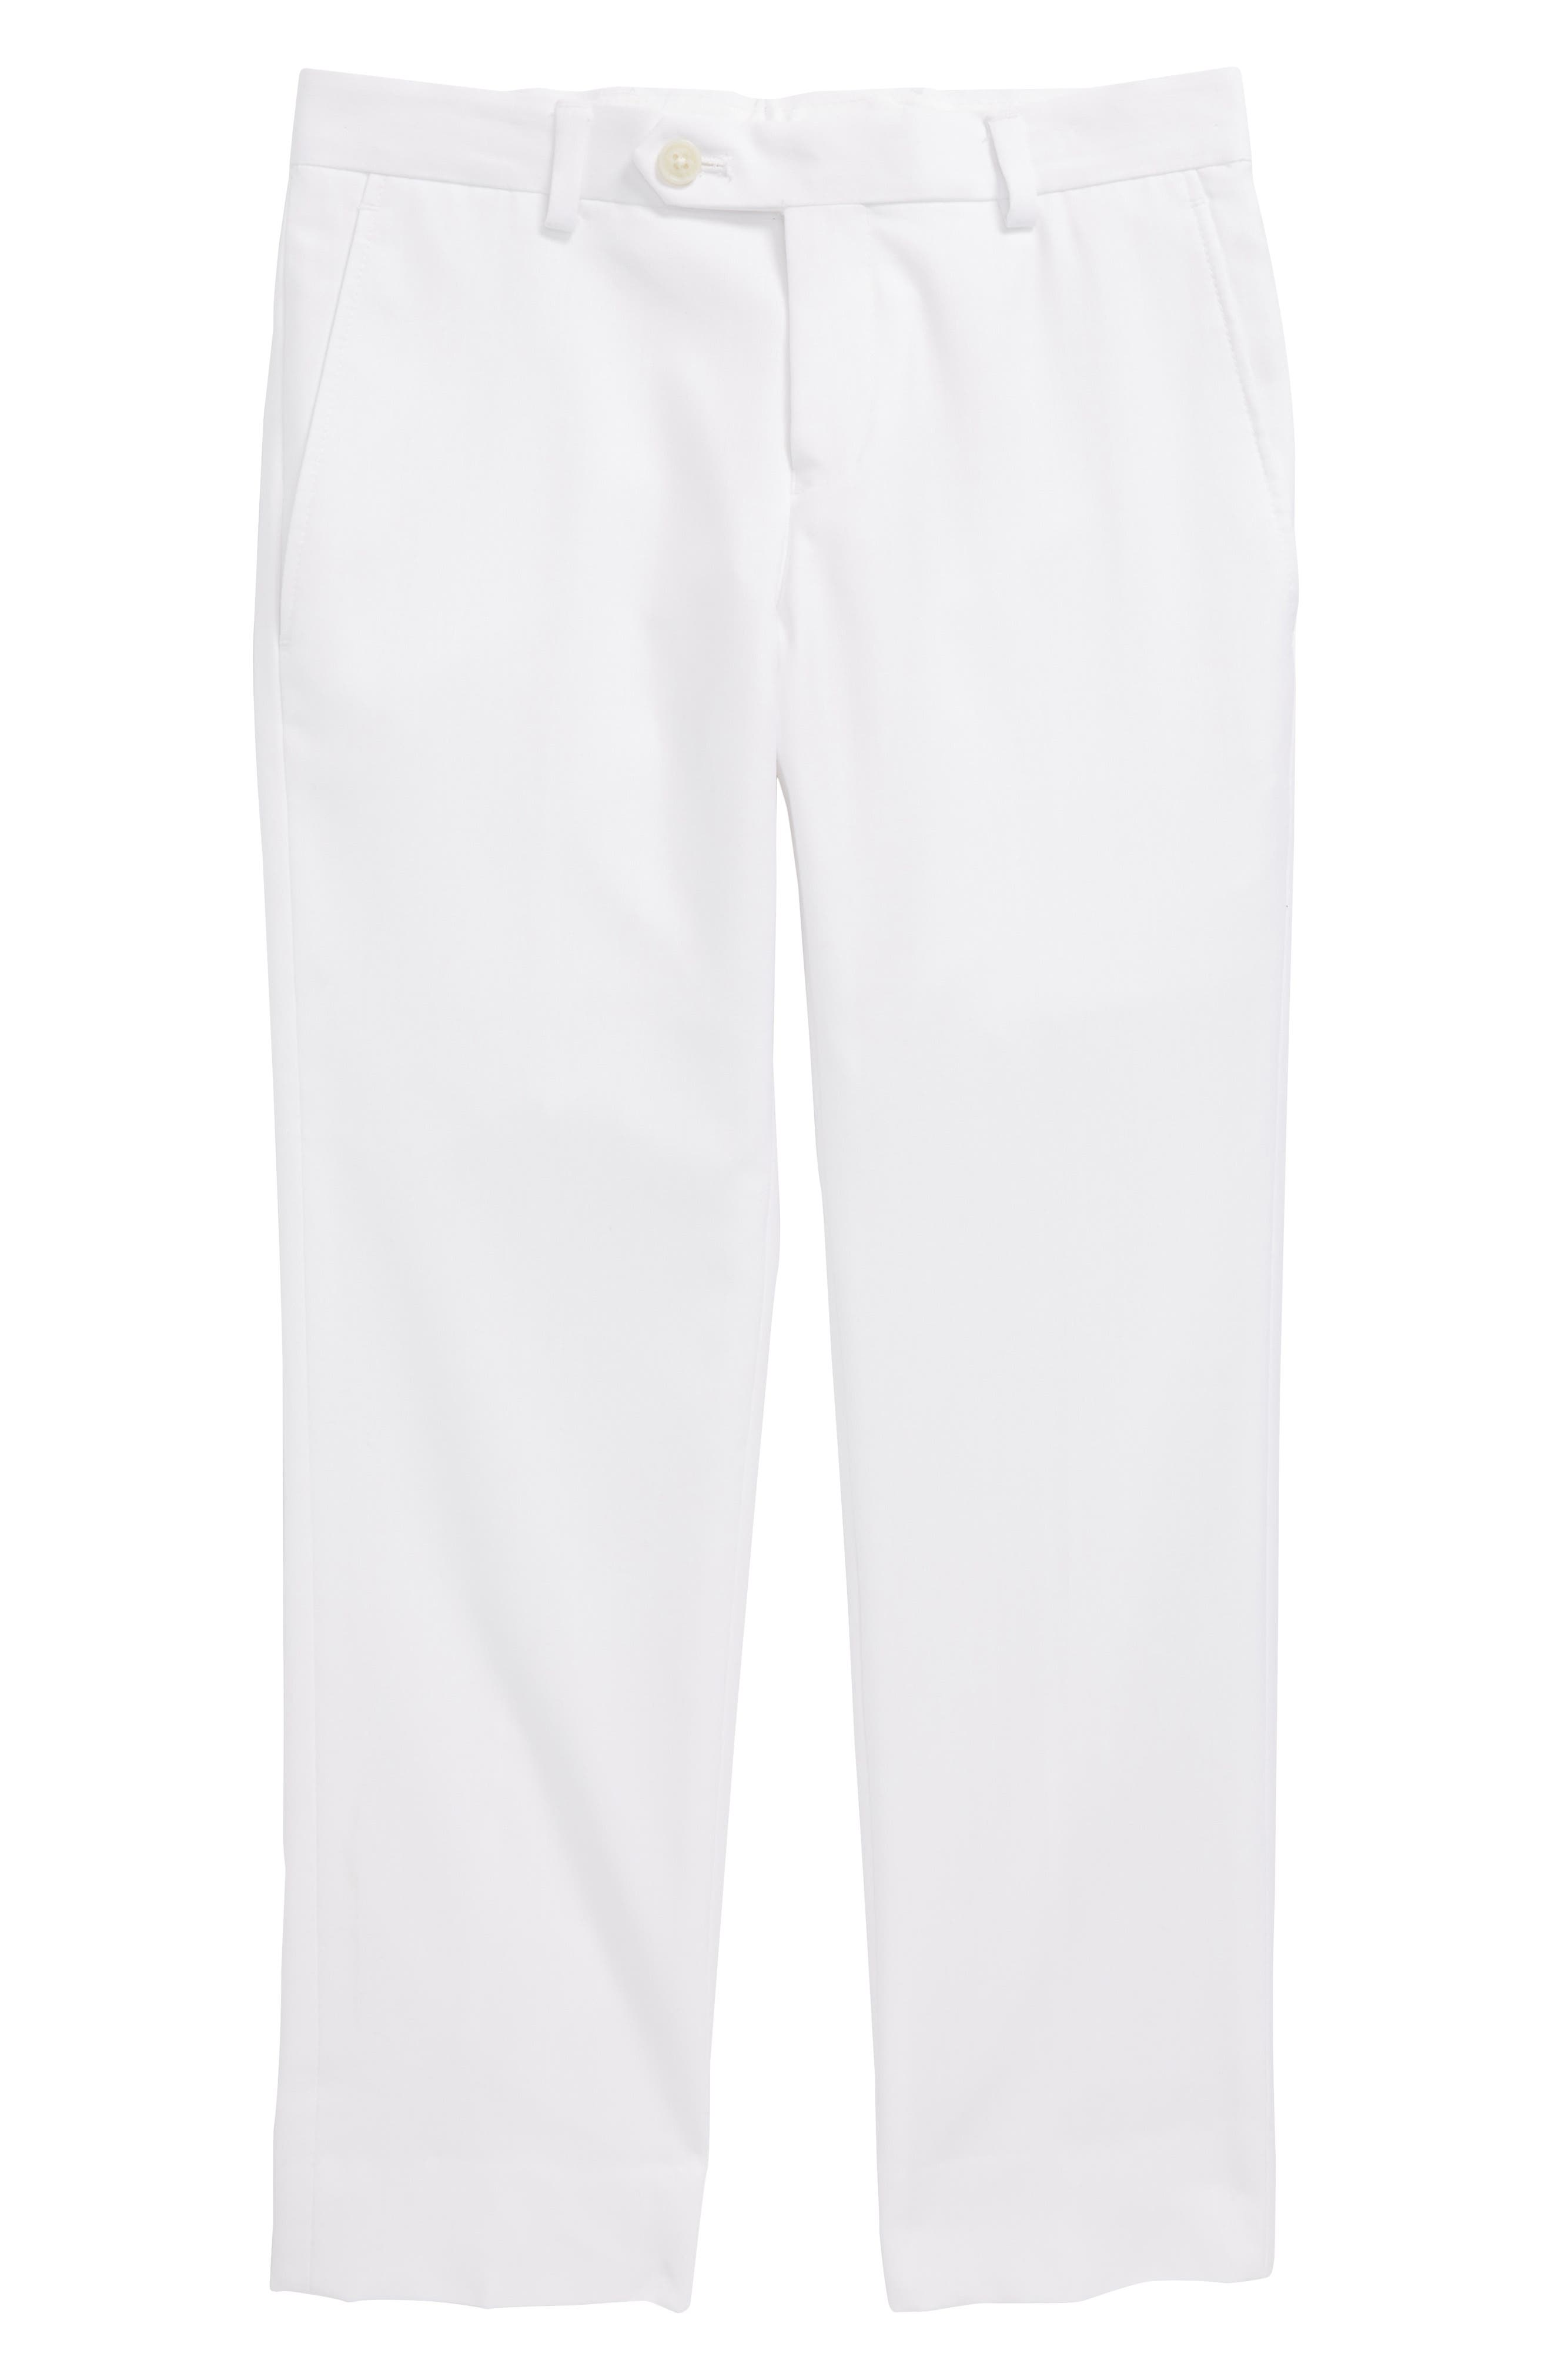 Image of Michael Kors Flat Front Pants